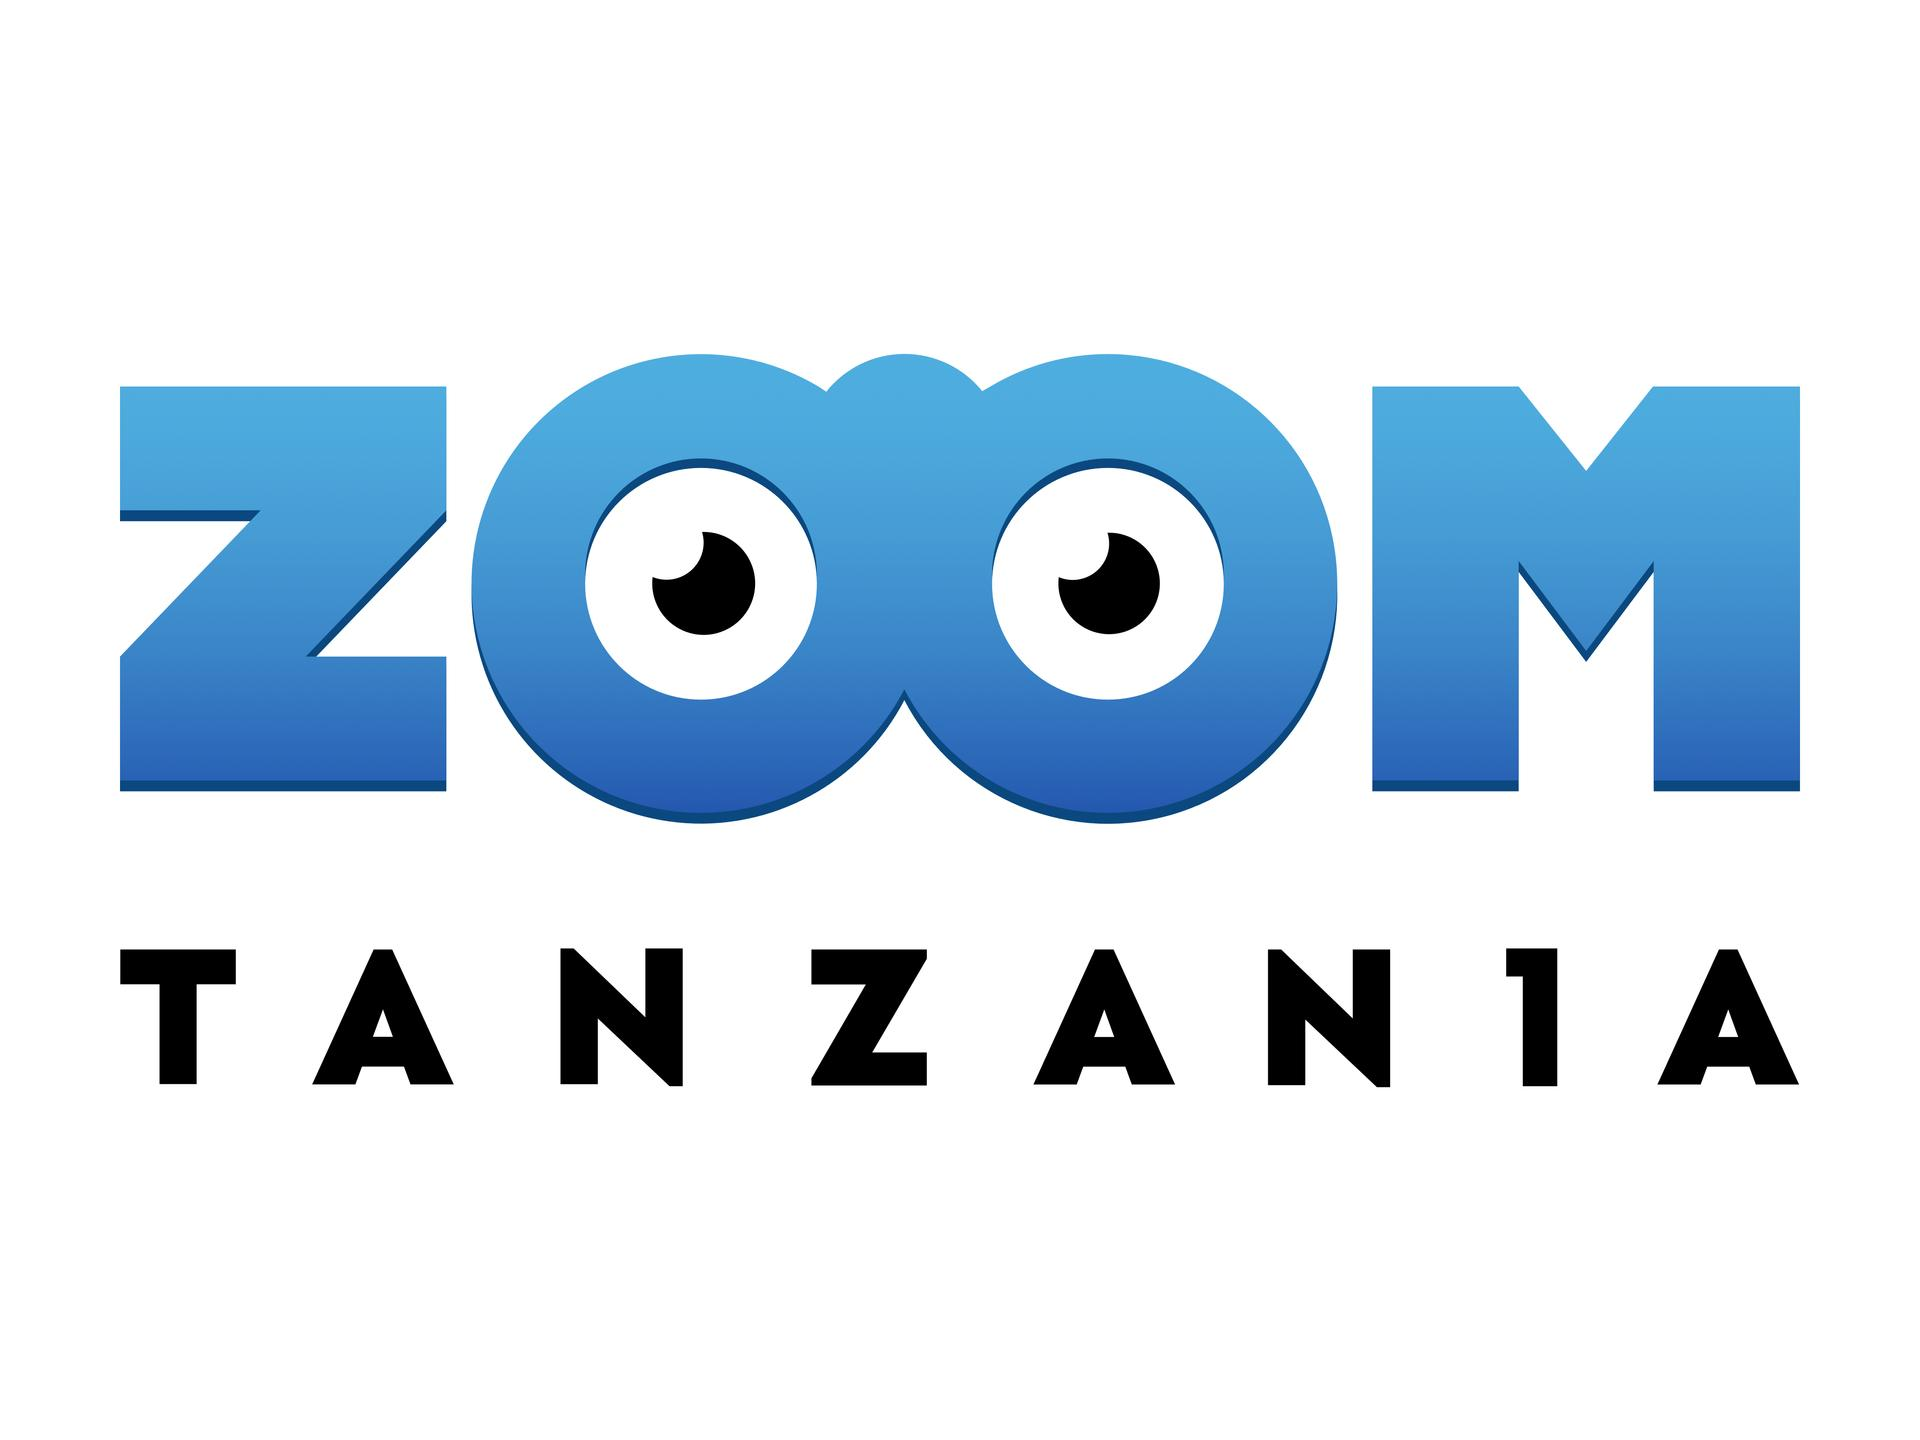 ZoomTanzania is Tanzania's largest online classifieds platform that  connects buyers and sellers.